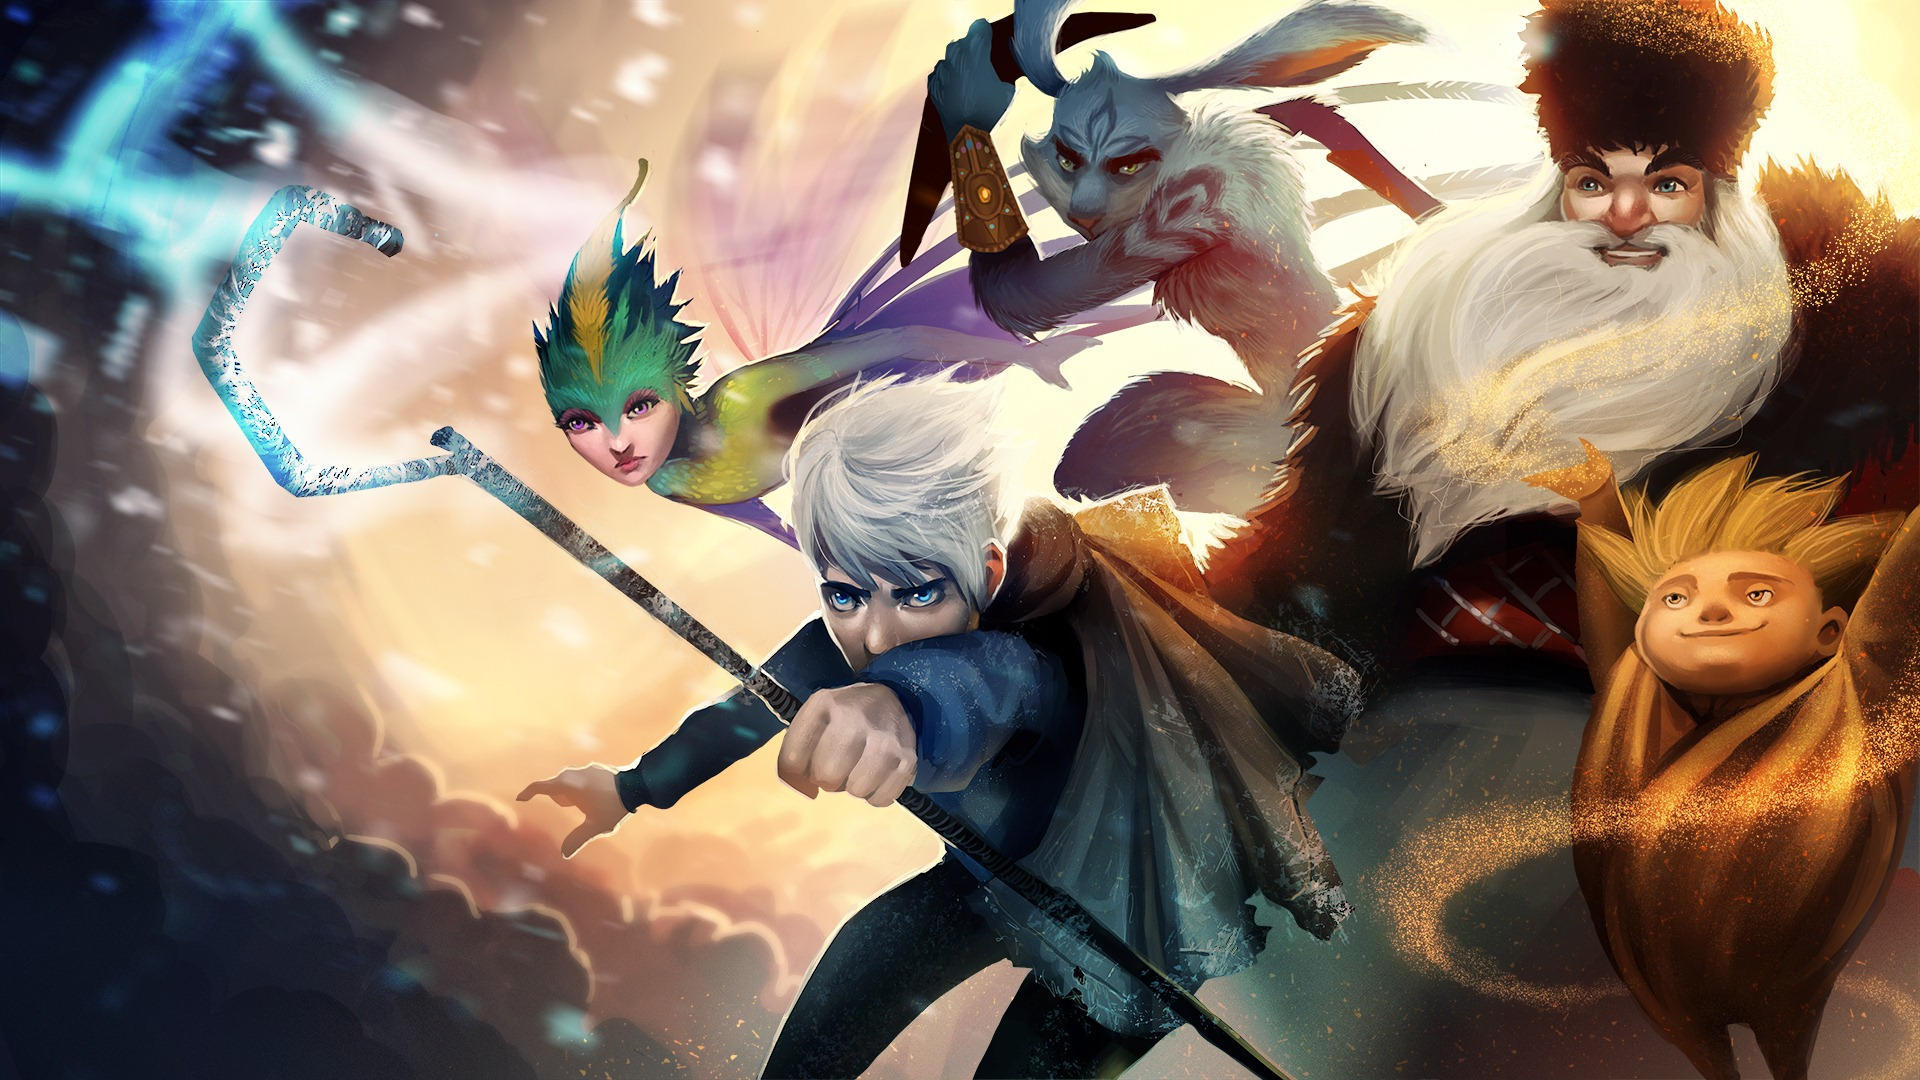 Rise of the guardians hd wallpapers 5 1920x1080 wallpaper rise of the guardians hd wallpapers 5 1920x1080 thecheapjerseys Images